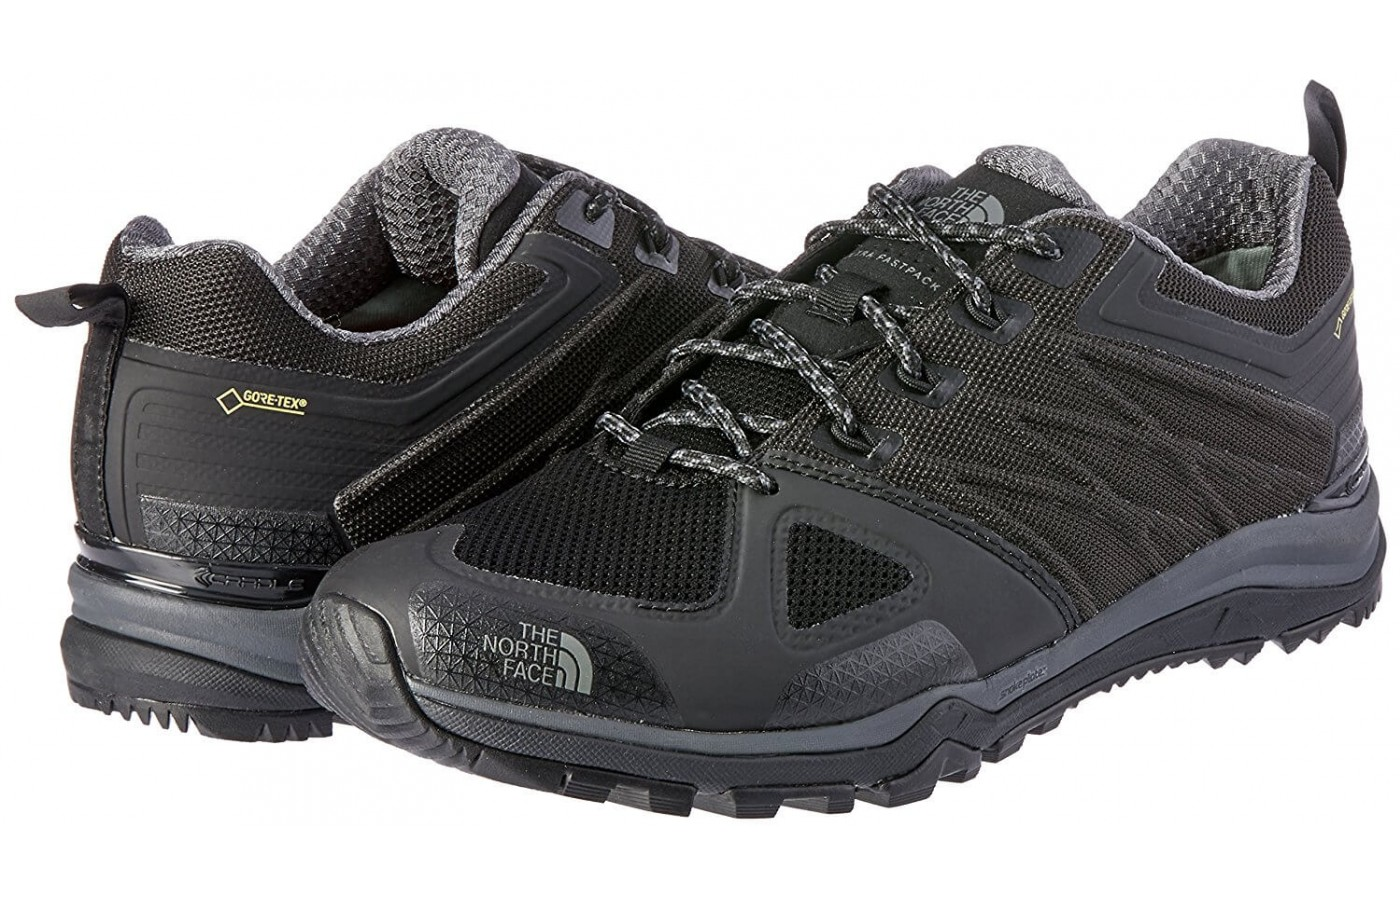 The The North Face Ultra Fastpack II GTX features a FlashDry collar